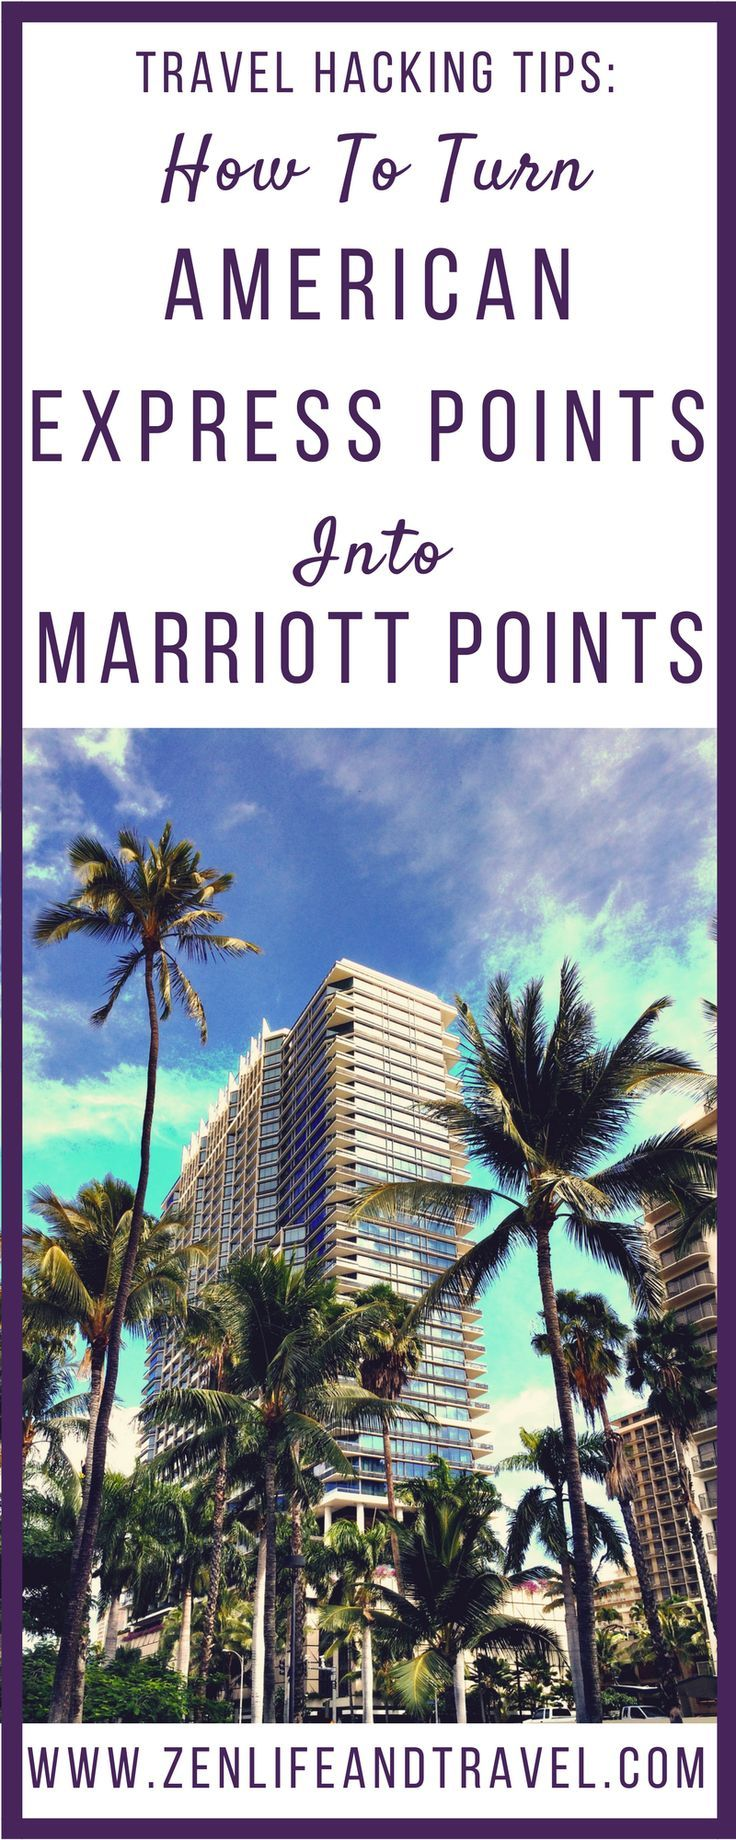 Travel Hacking Tips: How To Turn American Express Points Into Marriott Points.  This step by step guide will show you how to turn your American Express Membership Rewards points into Marriott Rewards points even though they aren't transfer partners! #travelhacks #traveltips #marriott #americanexpress #creditcardpoints